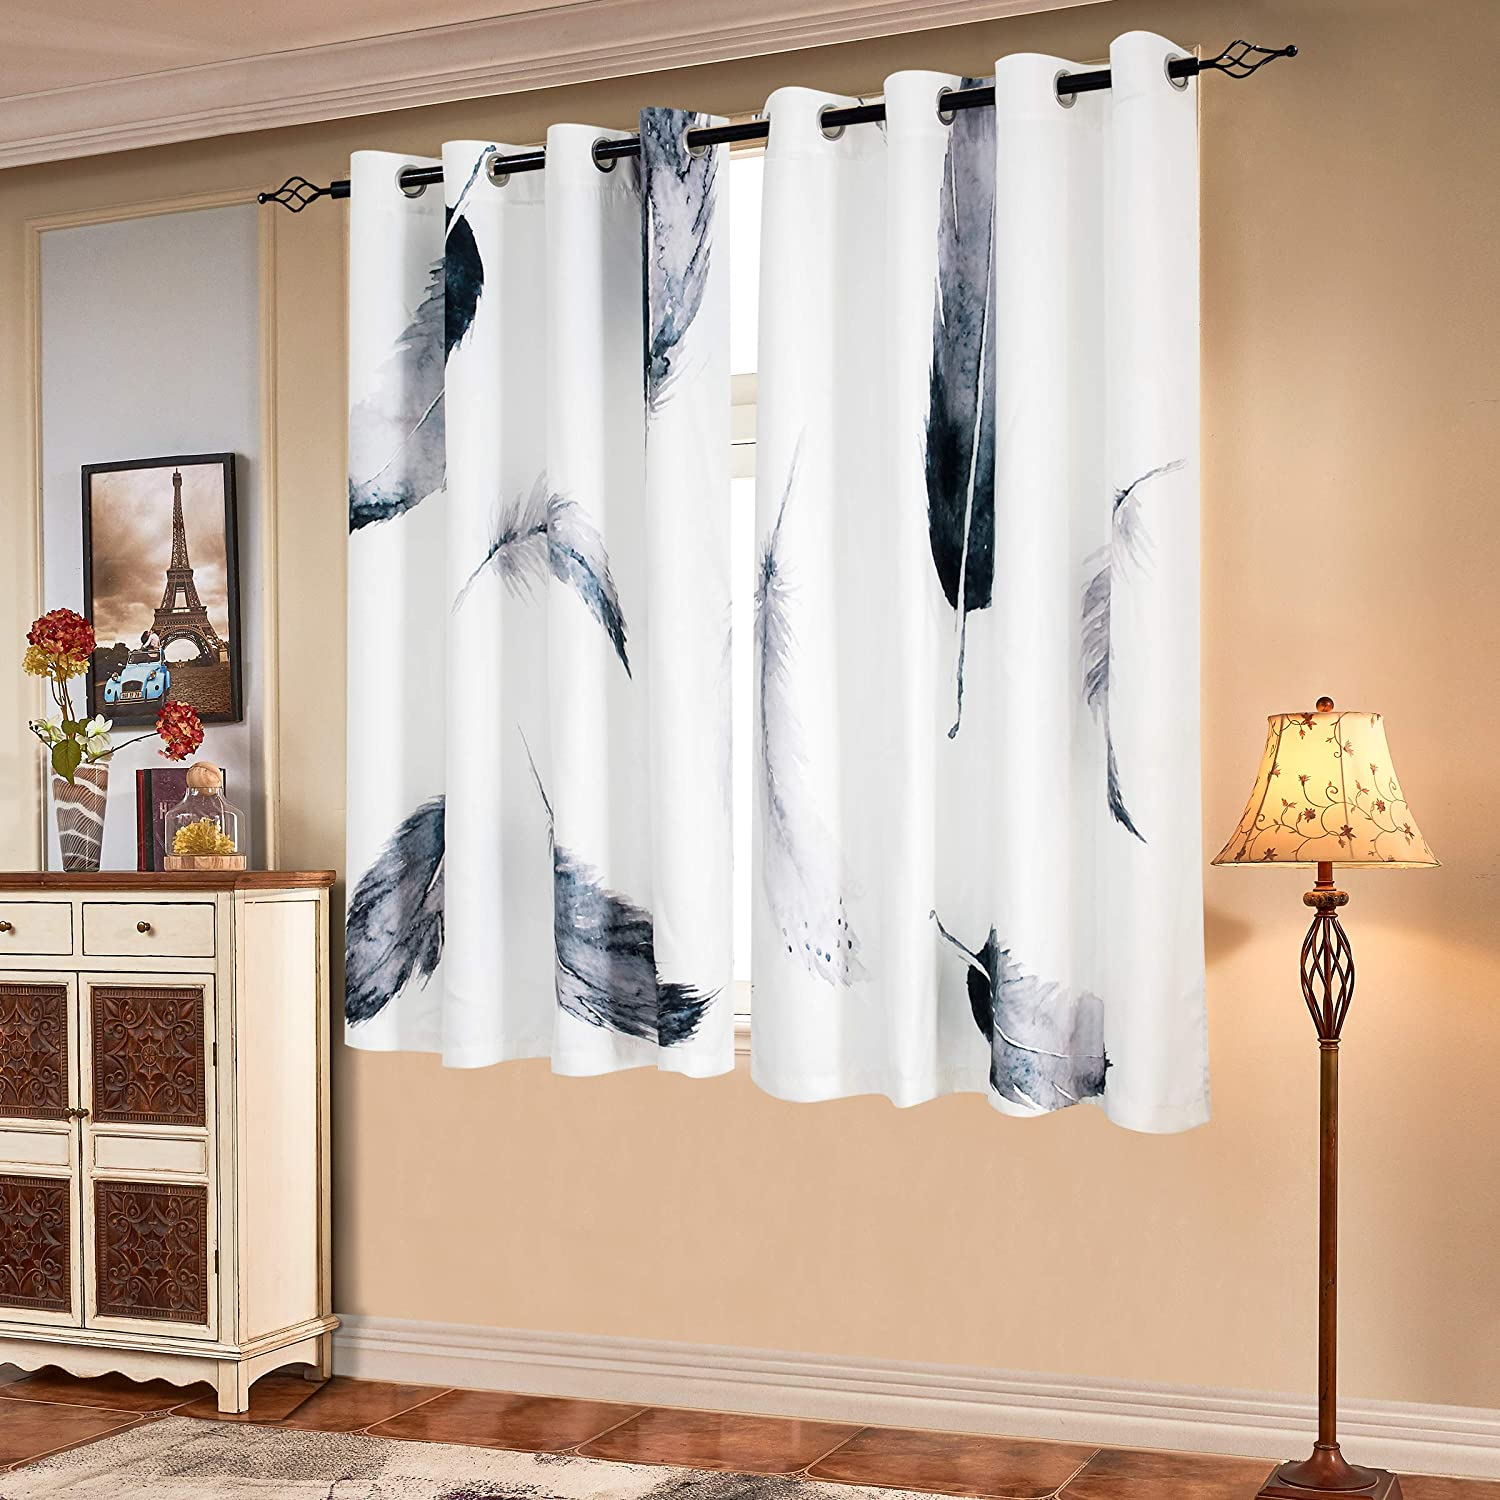 Subrtex Printed Curtains Blackout For Bedroom Living Room Kids Room Dining Room Valance Colorful Window Drapes 2 Panel Set 52 X 63 White Kitchen Dining